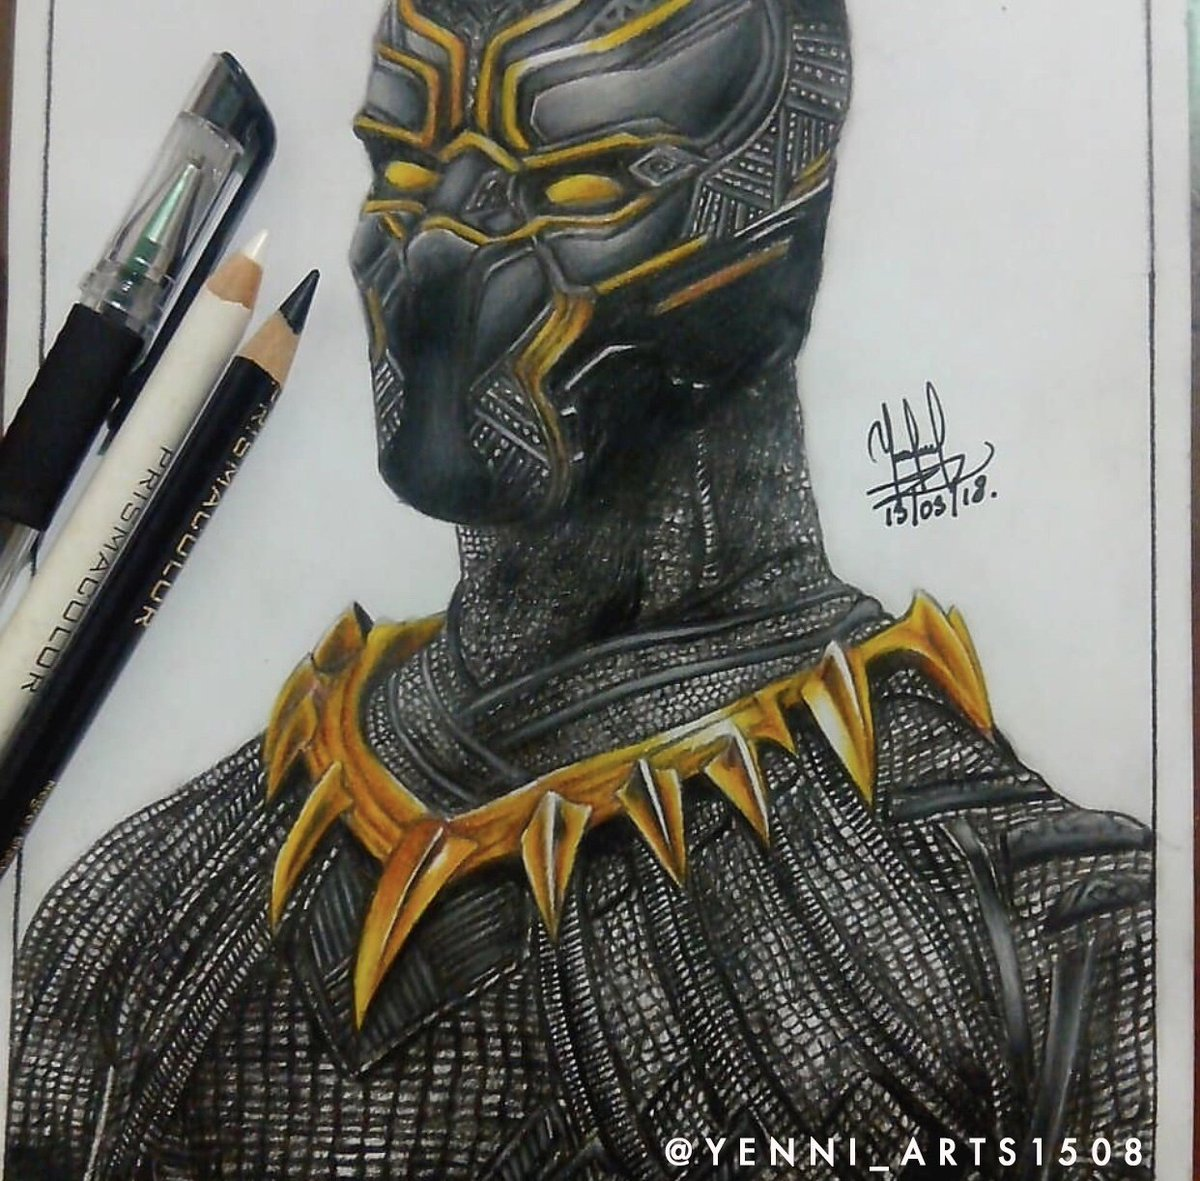 Black panther on twitter wakanda forever take a look through these blackpantherfanart submissions and share your own fan art using the hashtag